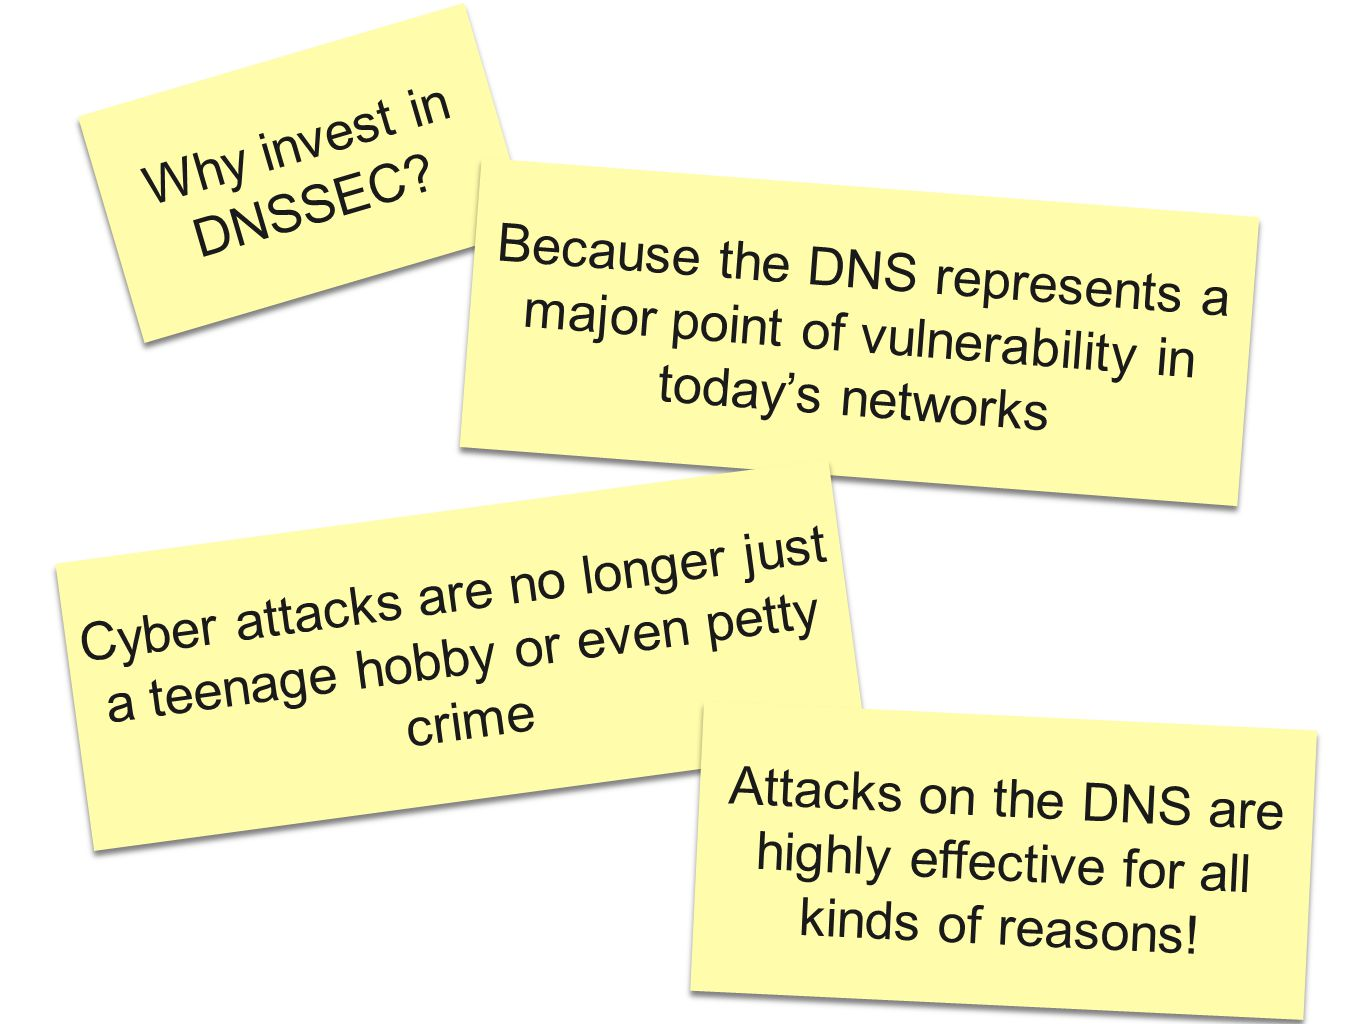 Why invest in DNSSEC? Because the DNS represents a major point of vulnerability in today's networks Cyber attacks are no longer just a teenage hobby o